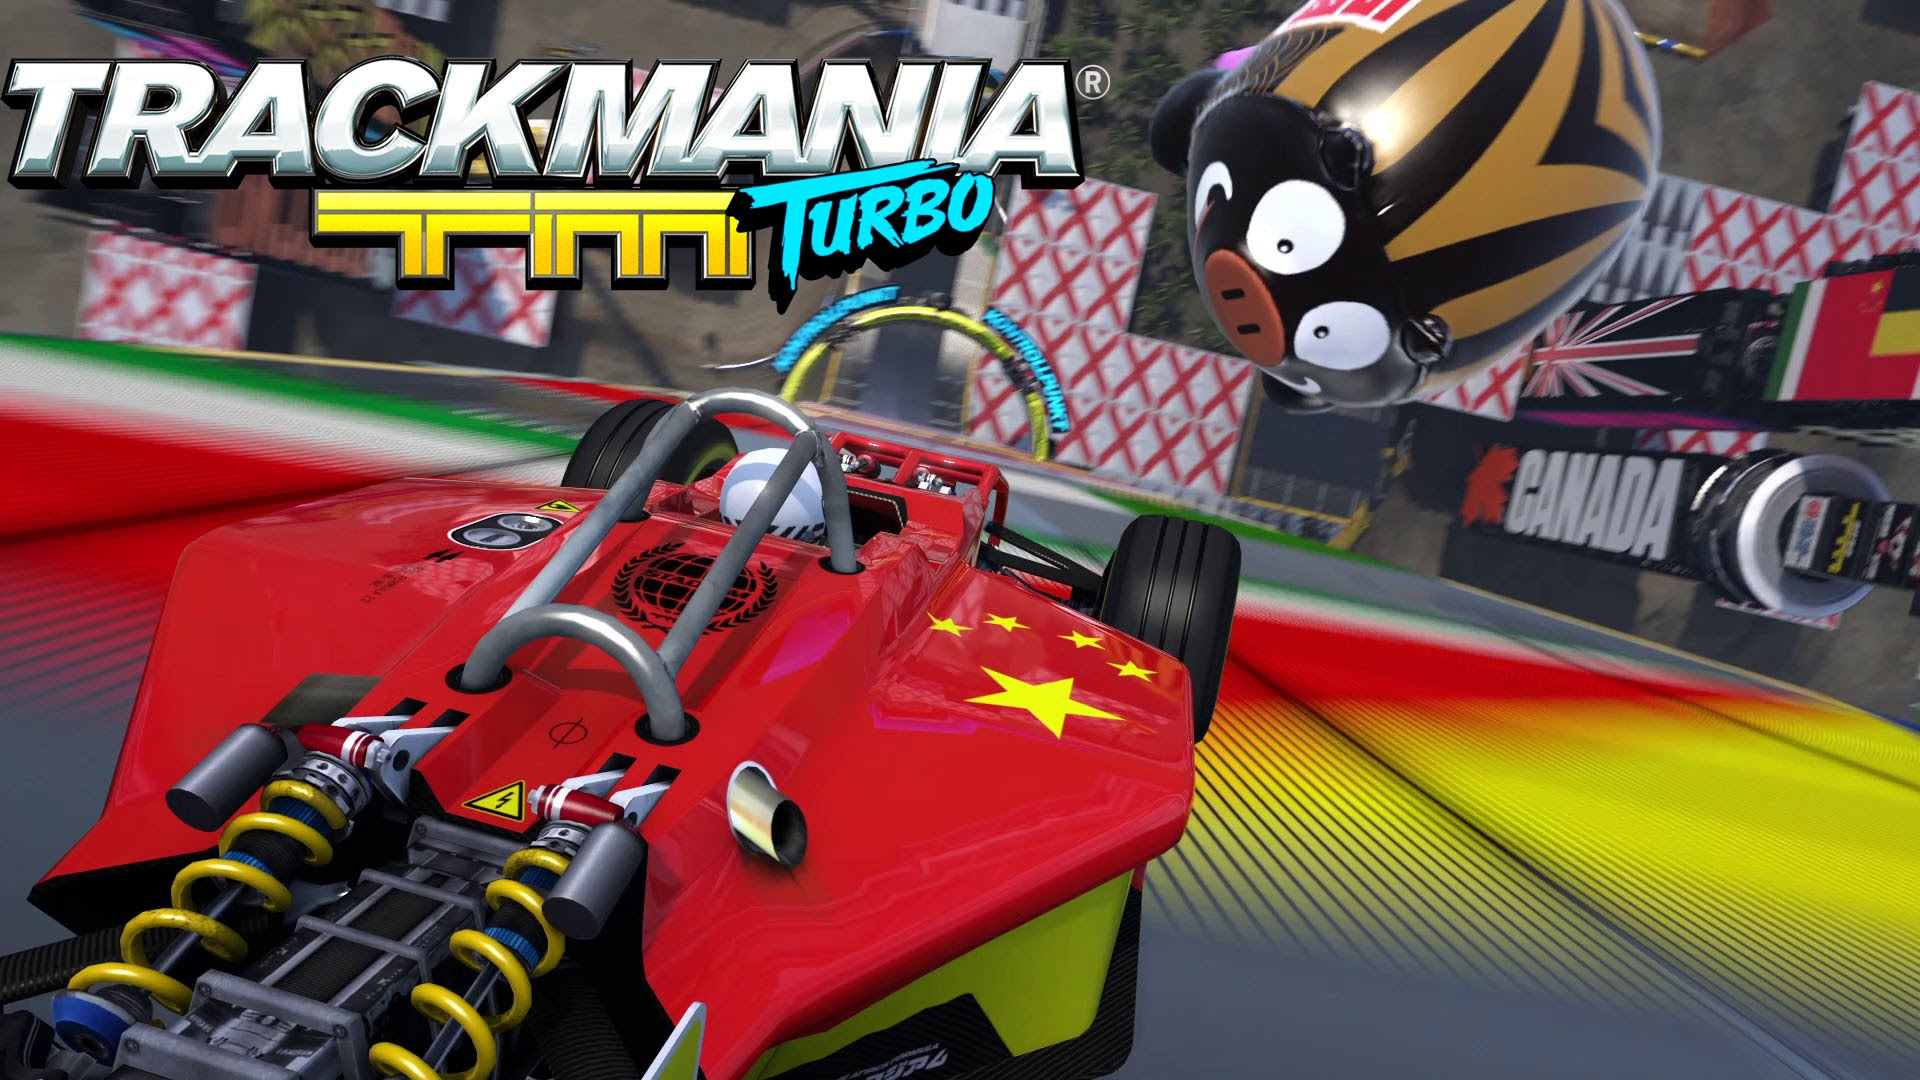 Trackmania Turbo Backgrounds